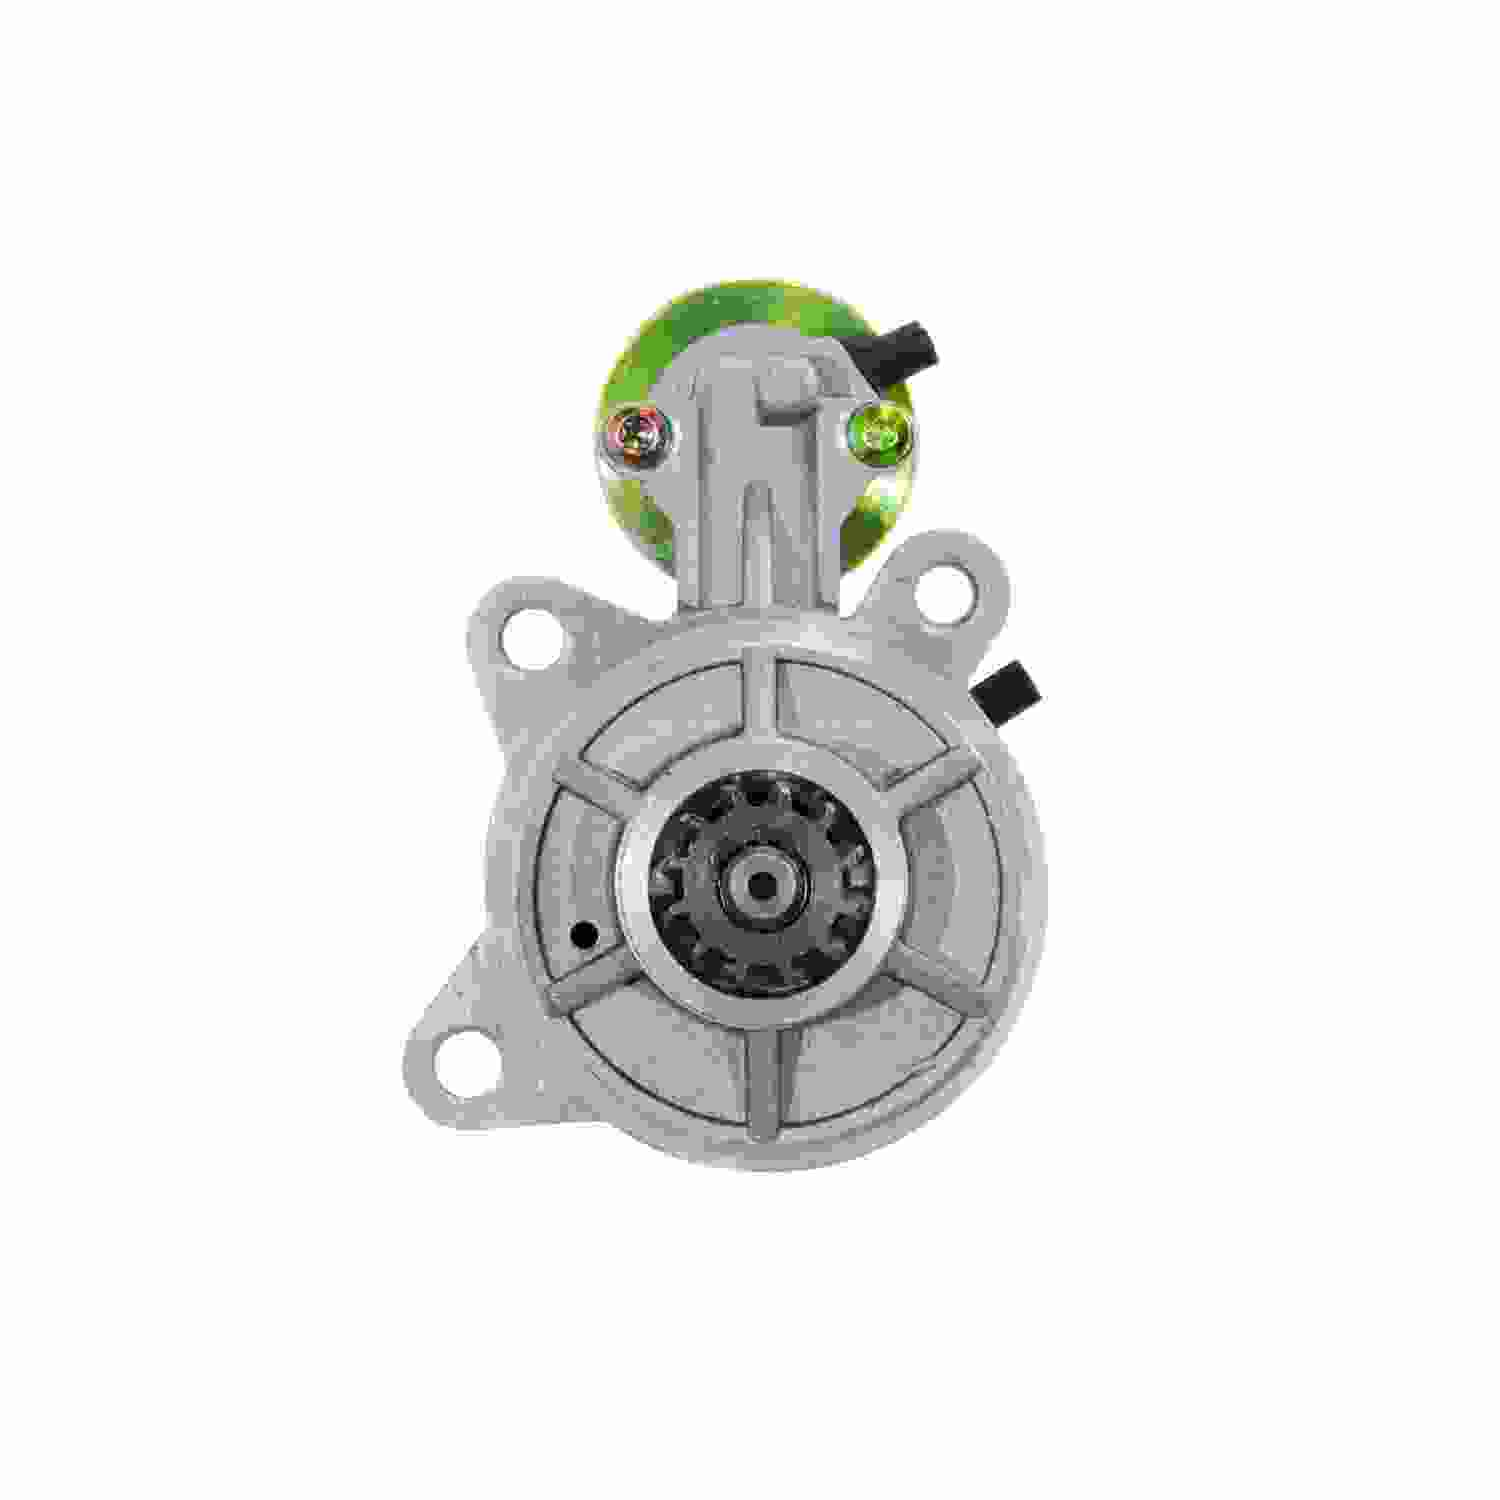 ACDELCO GOLD/PROFESSIONAL - Starter Motor - DCC 337-1064